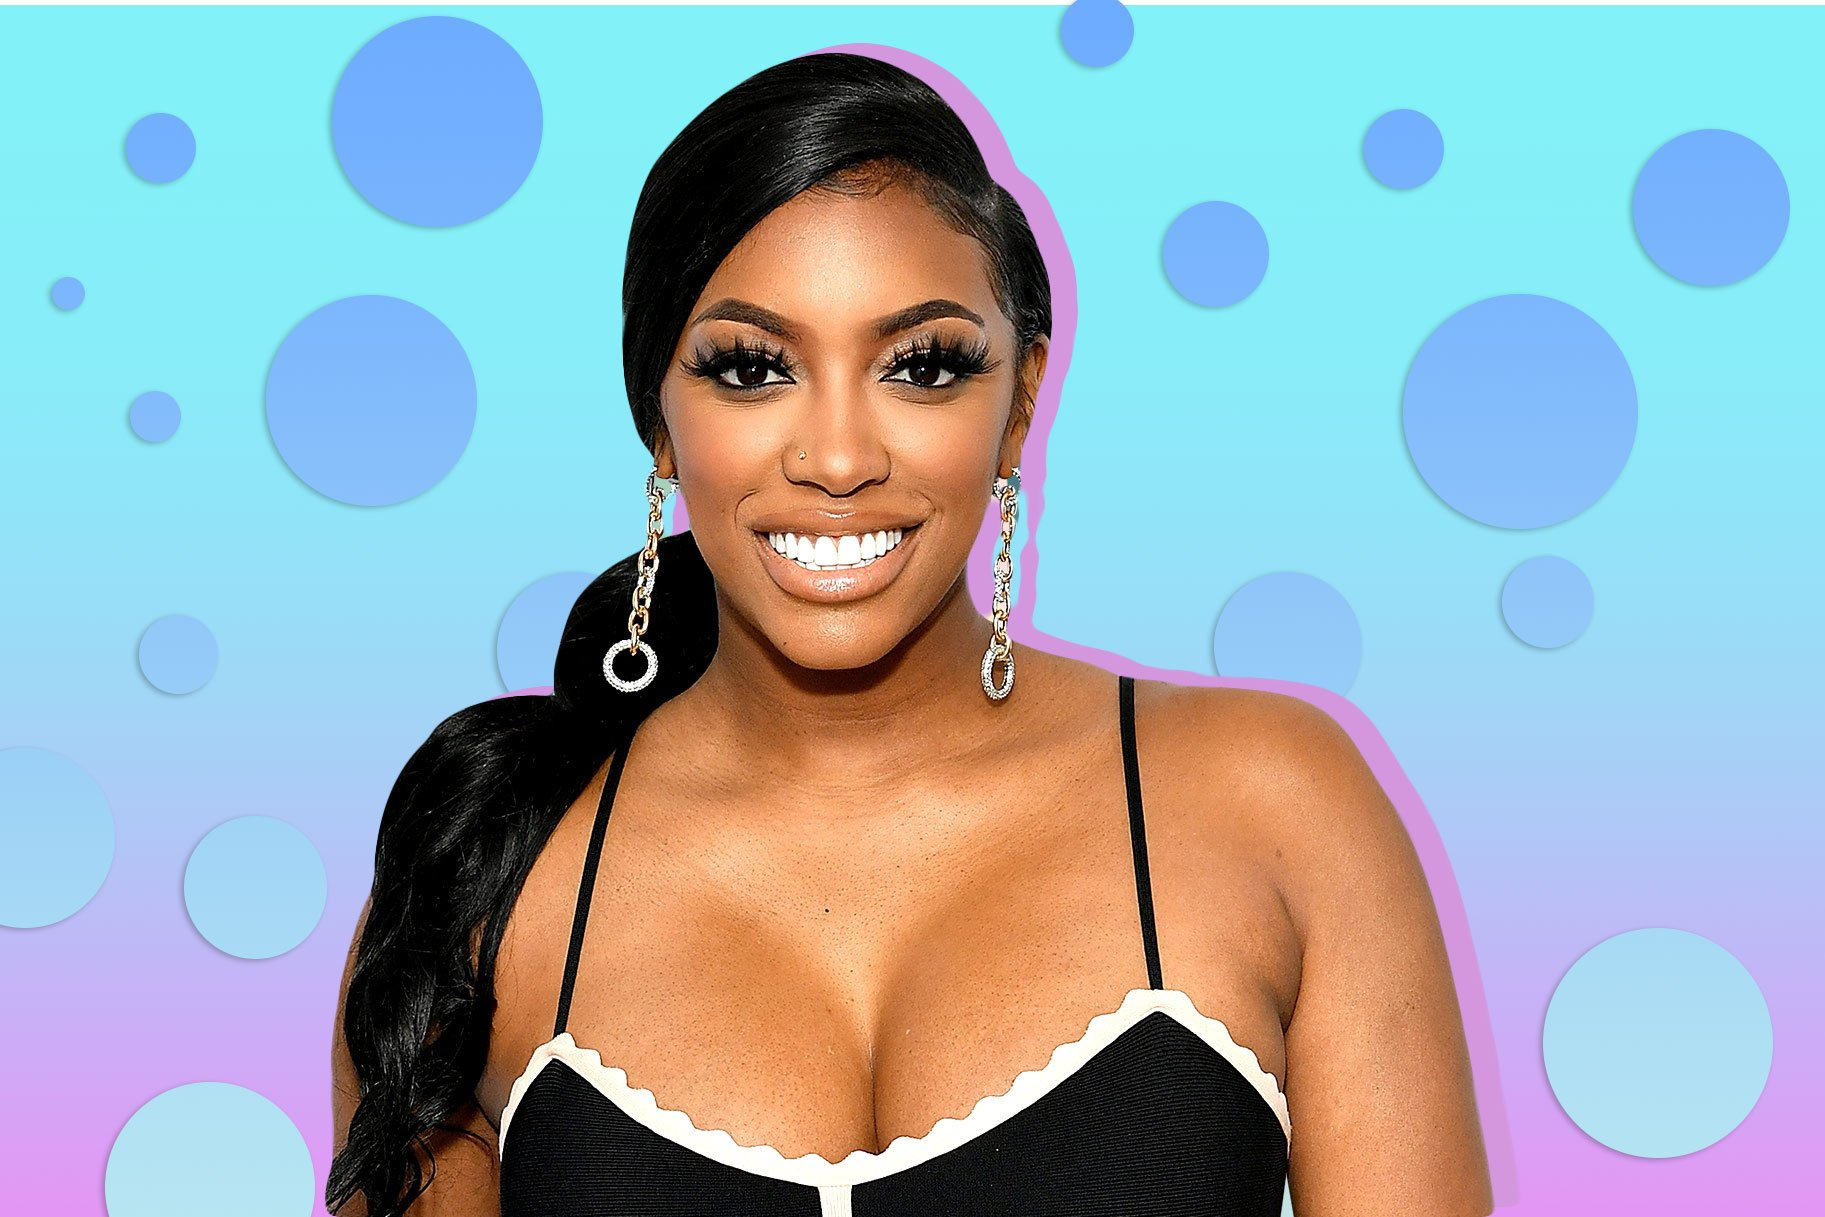 Porsha Williams Tells Fans To Take A Break And Chill Because This Is The Time To Rejoice